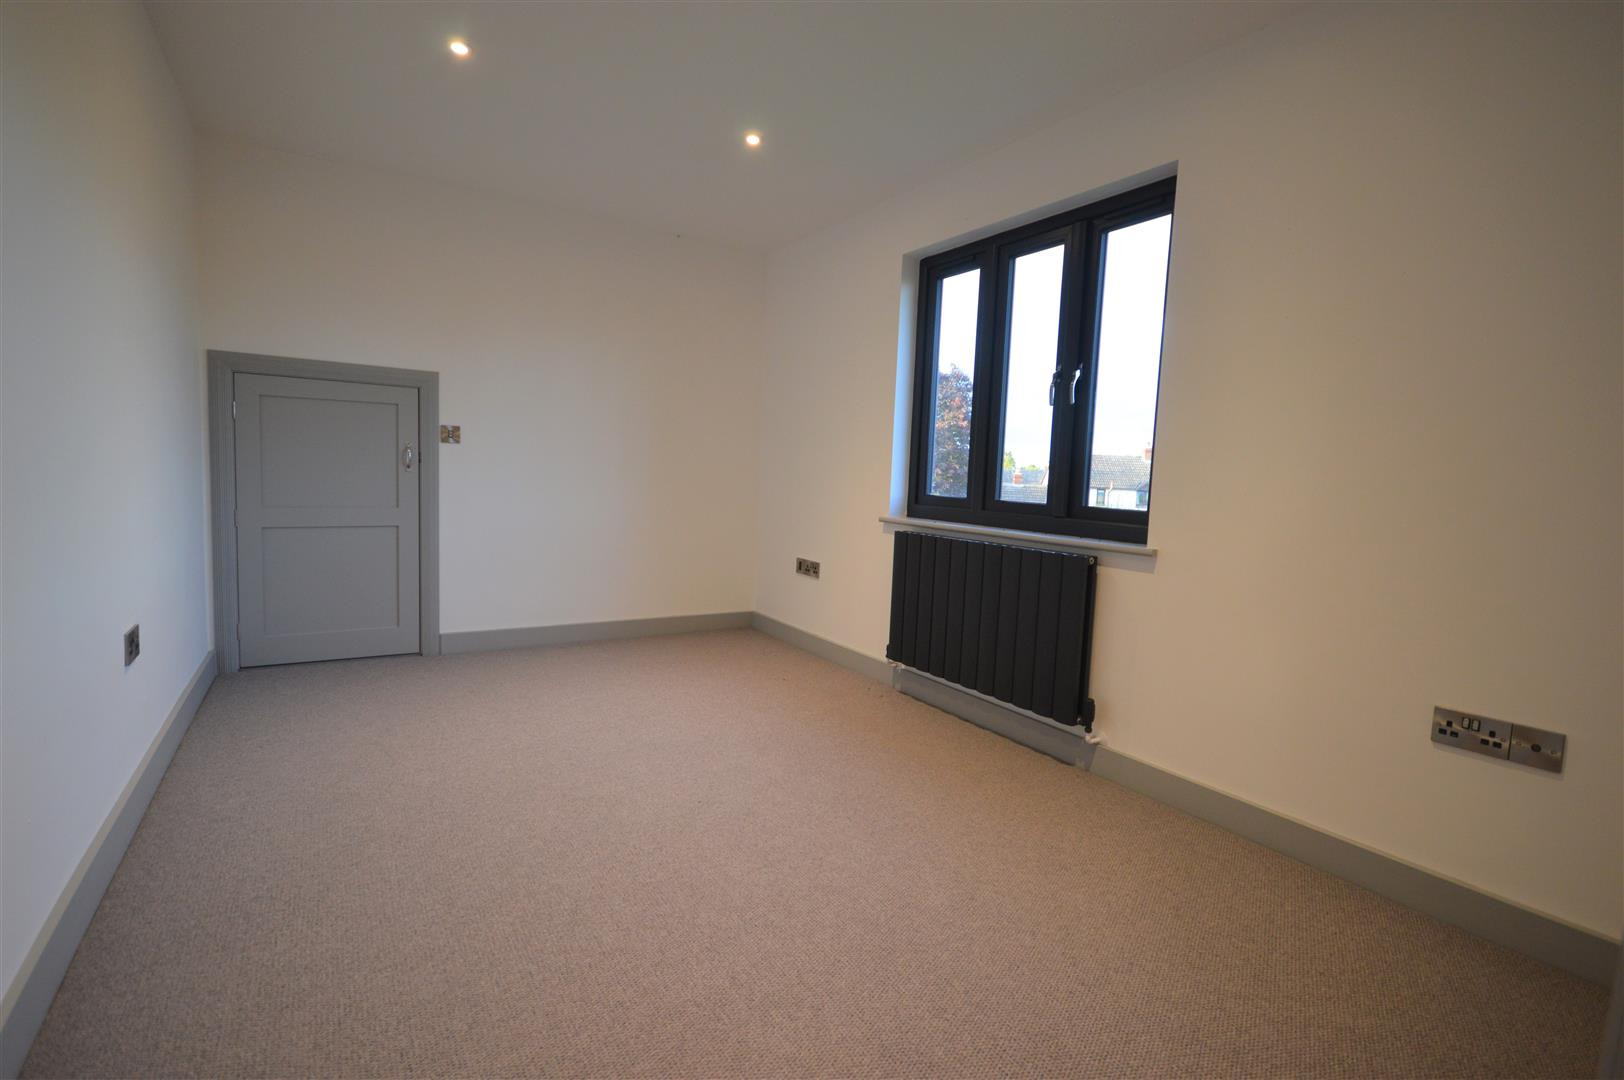 4 bed detached for sale in Brimfield 12